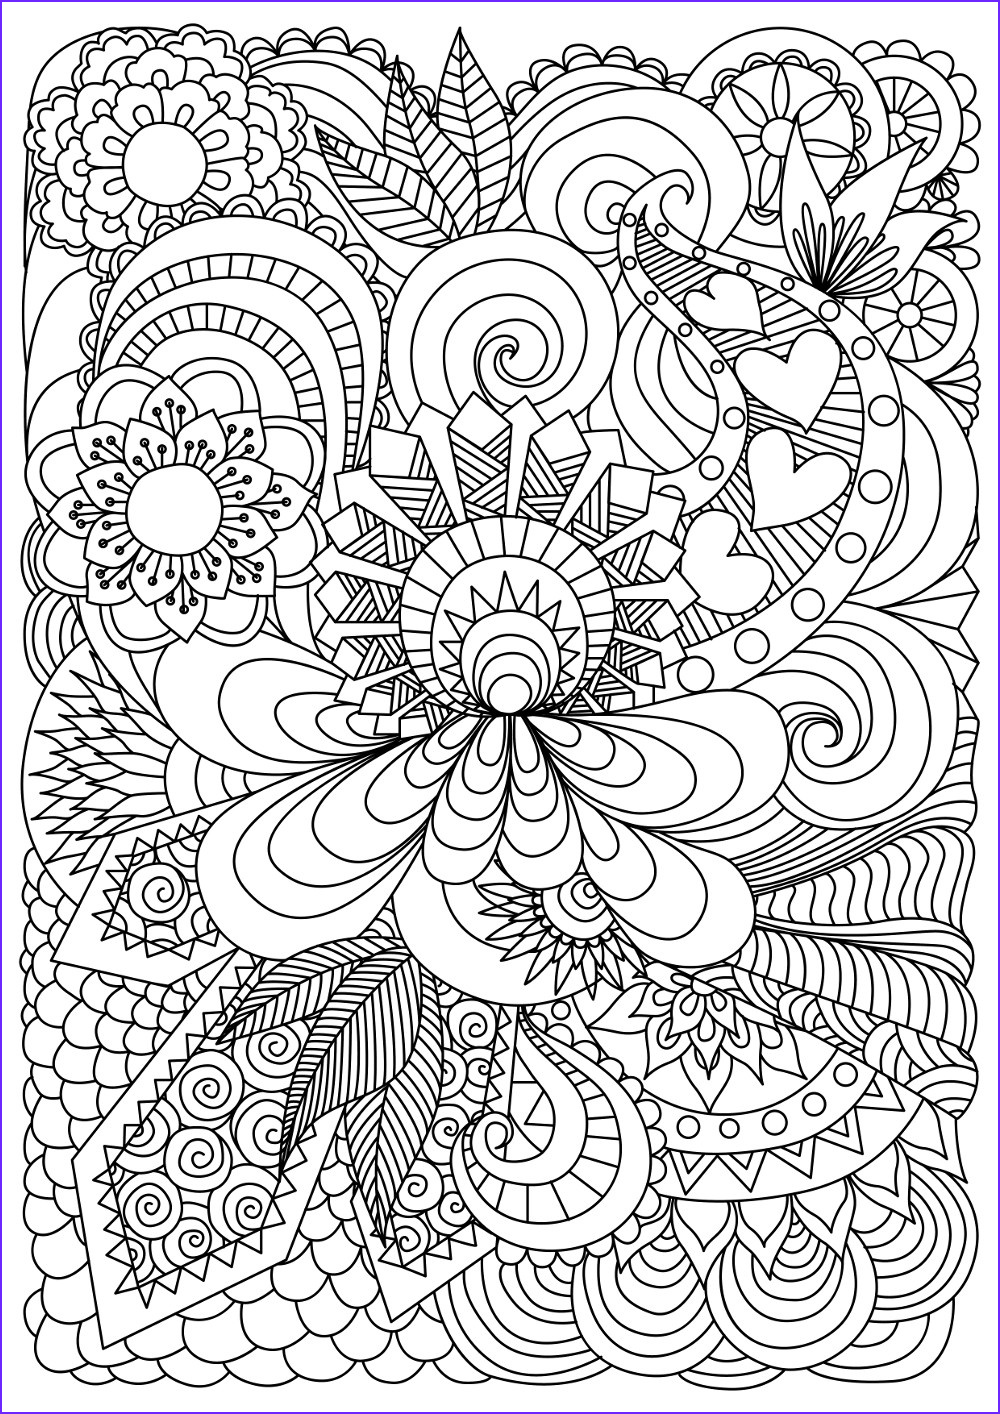 Coloring Pictures for Adults Inspirational Image 37 Best Adults Coloring Pages Updated 2018